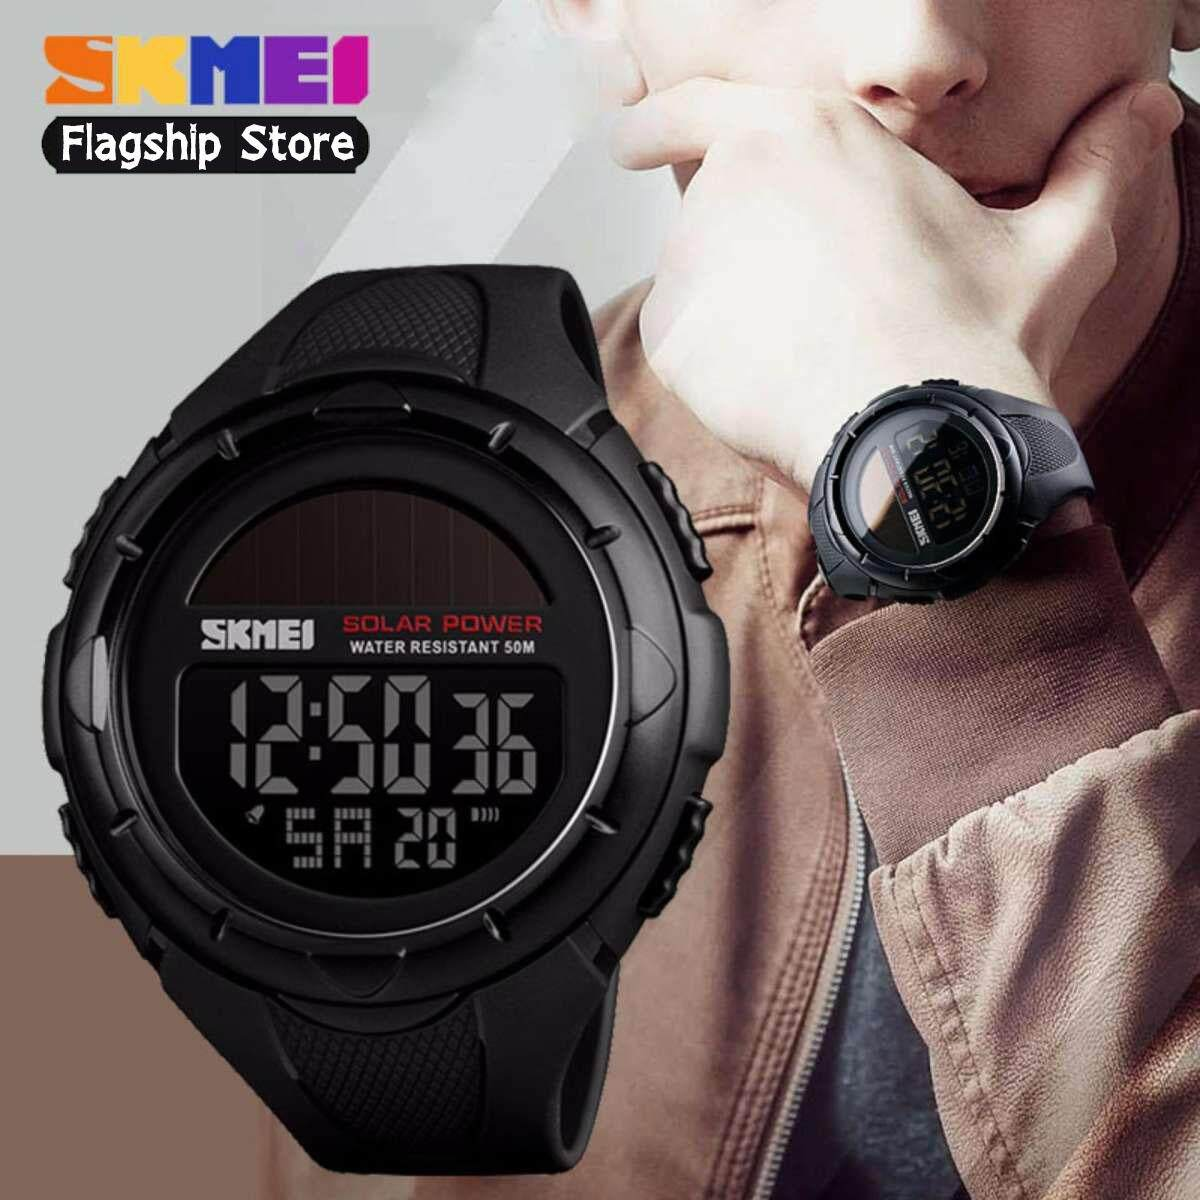 SKMEI New Solar Power Men Sports Watches LED Digital Watch Luxury Brand Electronic Sport Waterproof Wristwatches